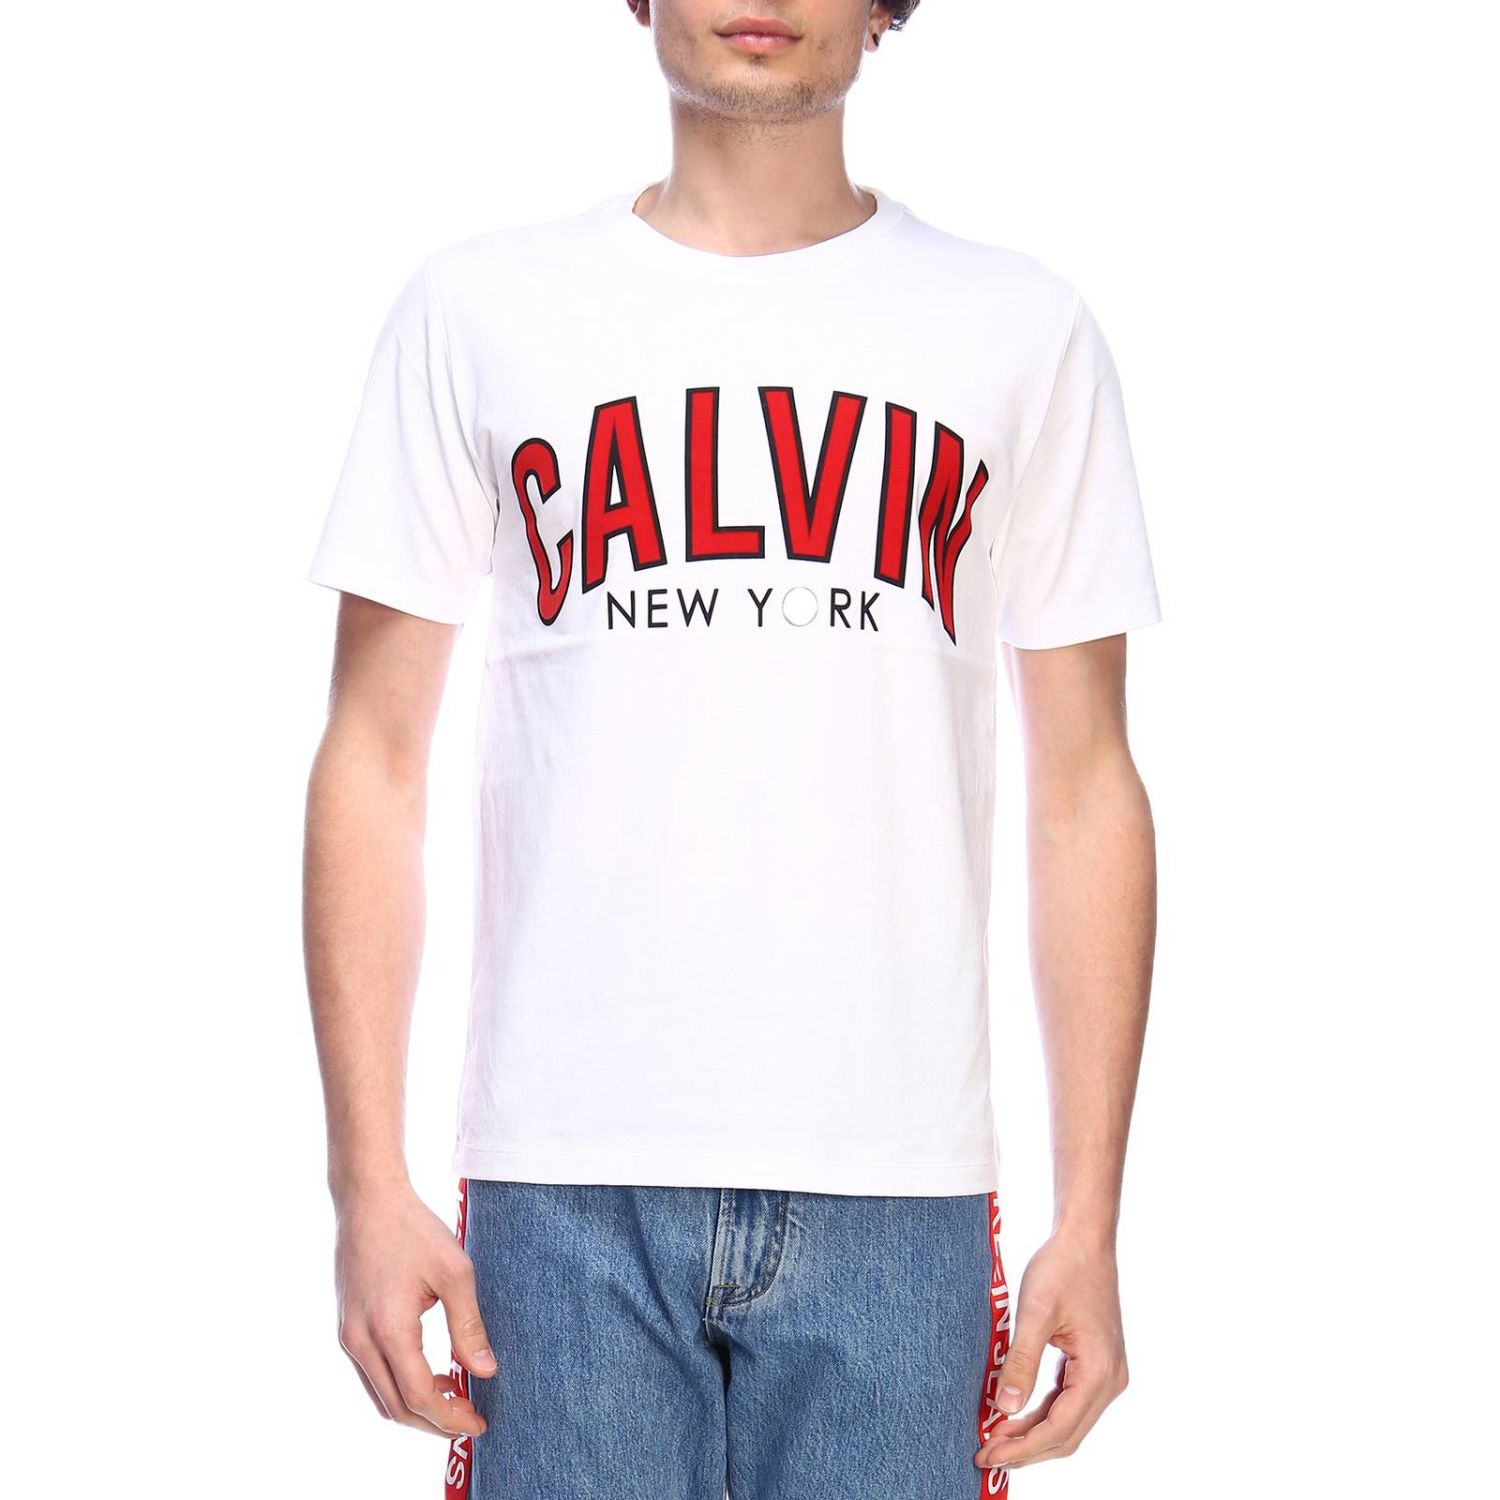 T-shirt men Calvin Klein Jeans white 1